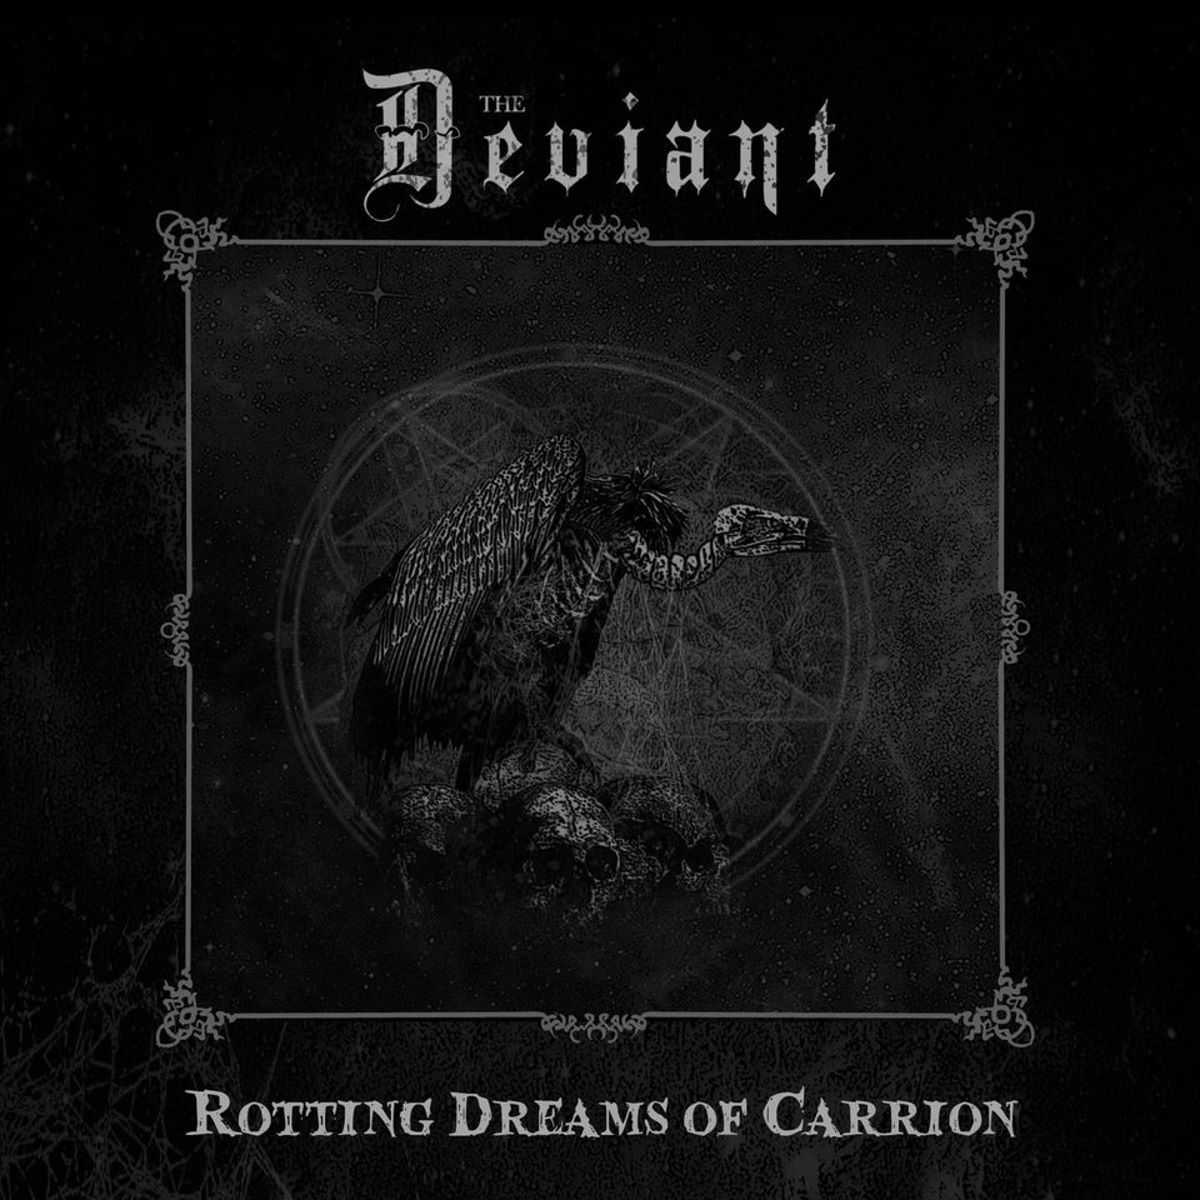 THE DEVIANT - Rotting Dreams Of Carrion - album cover